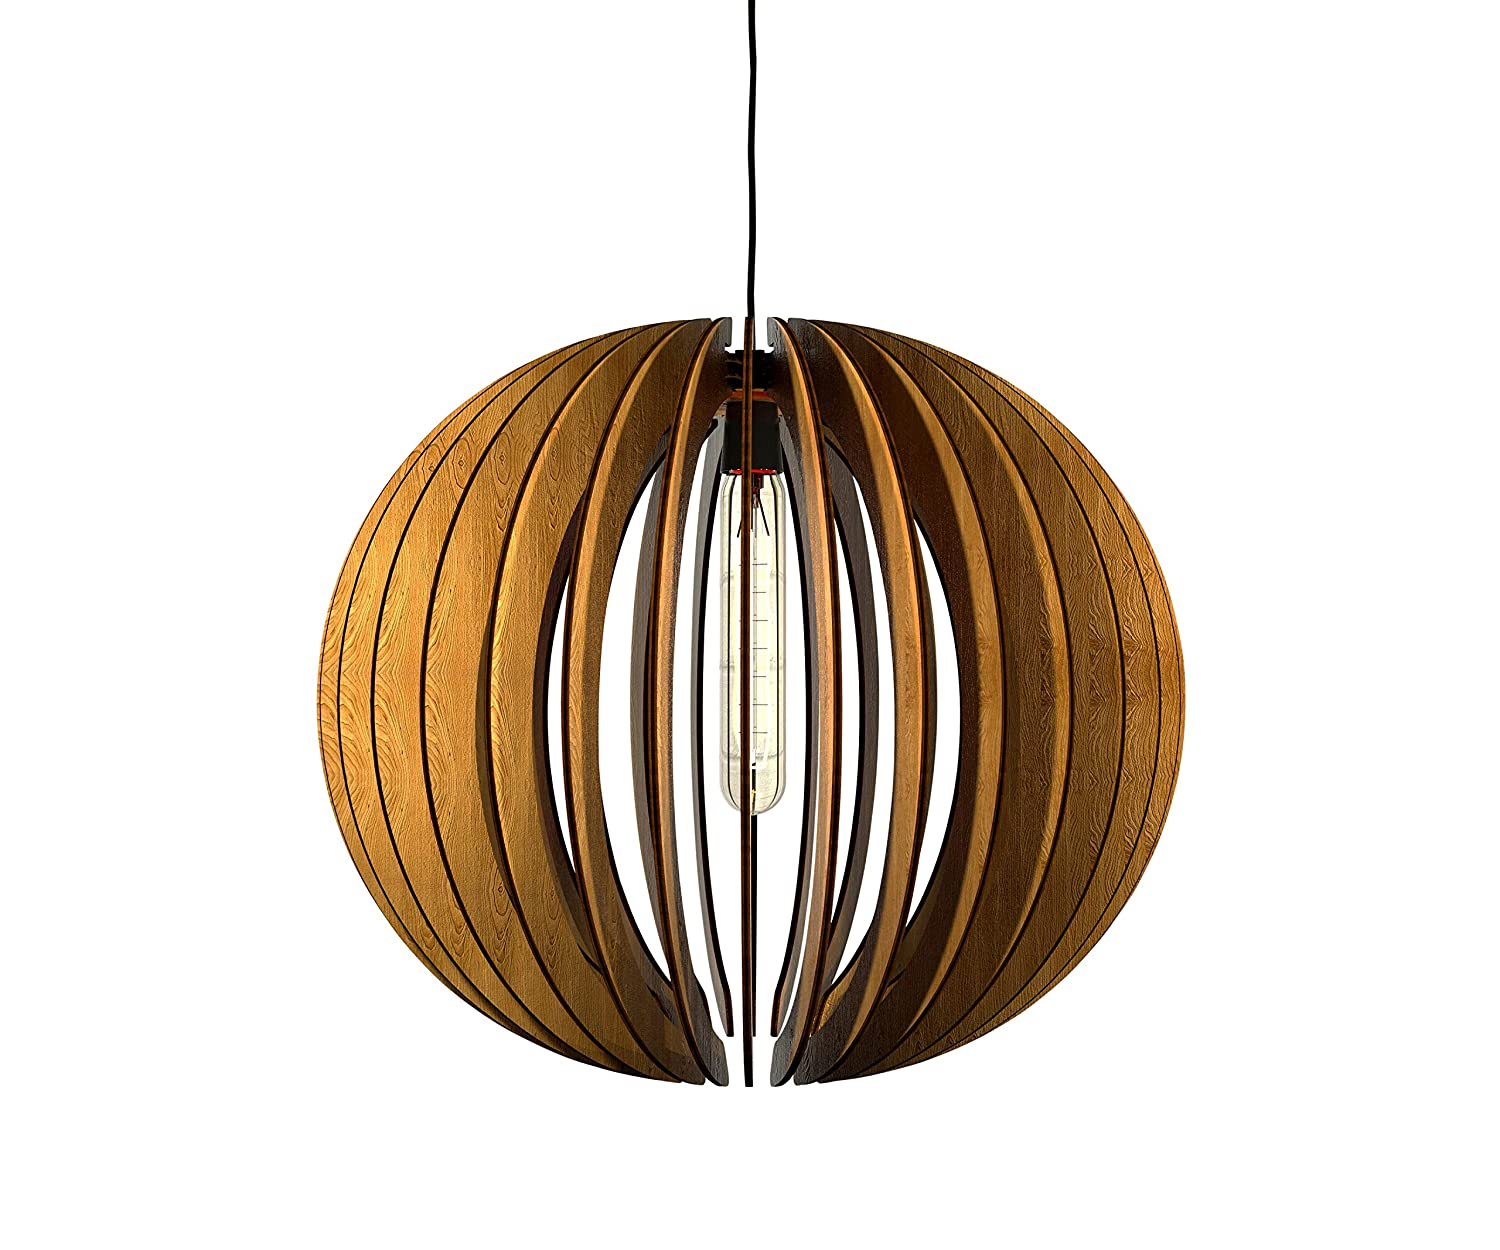 wood pendant lighting. Thr3e Lighting Bowl Pendant Wood Light - Chandelier Amazon.com